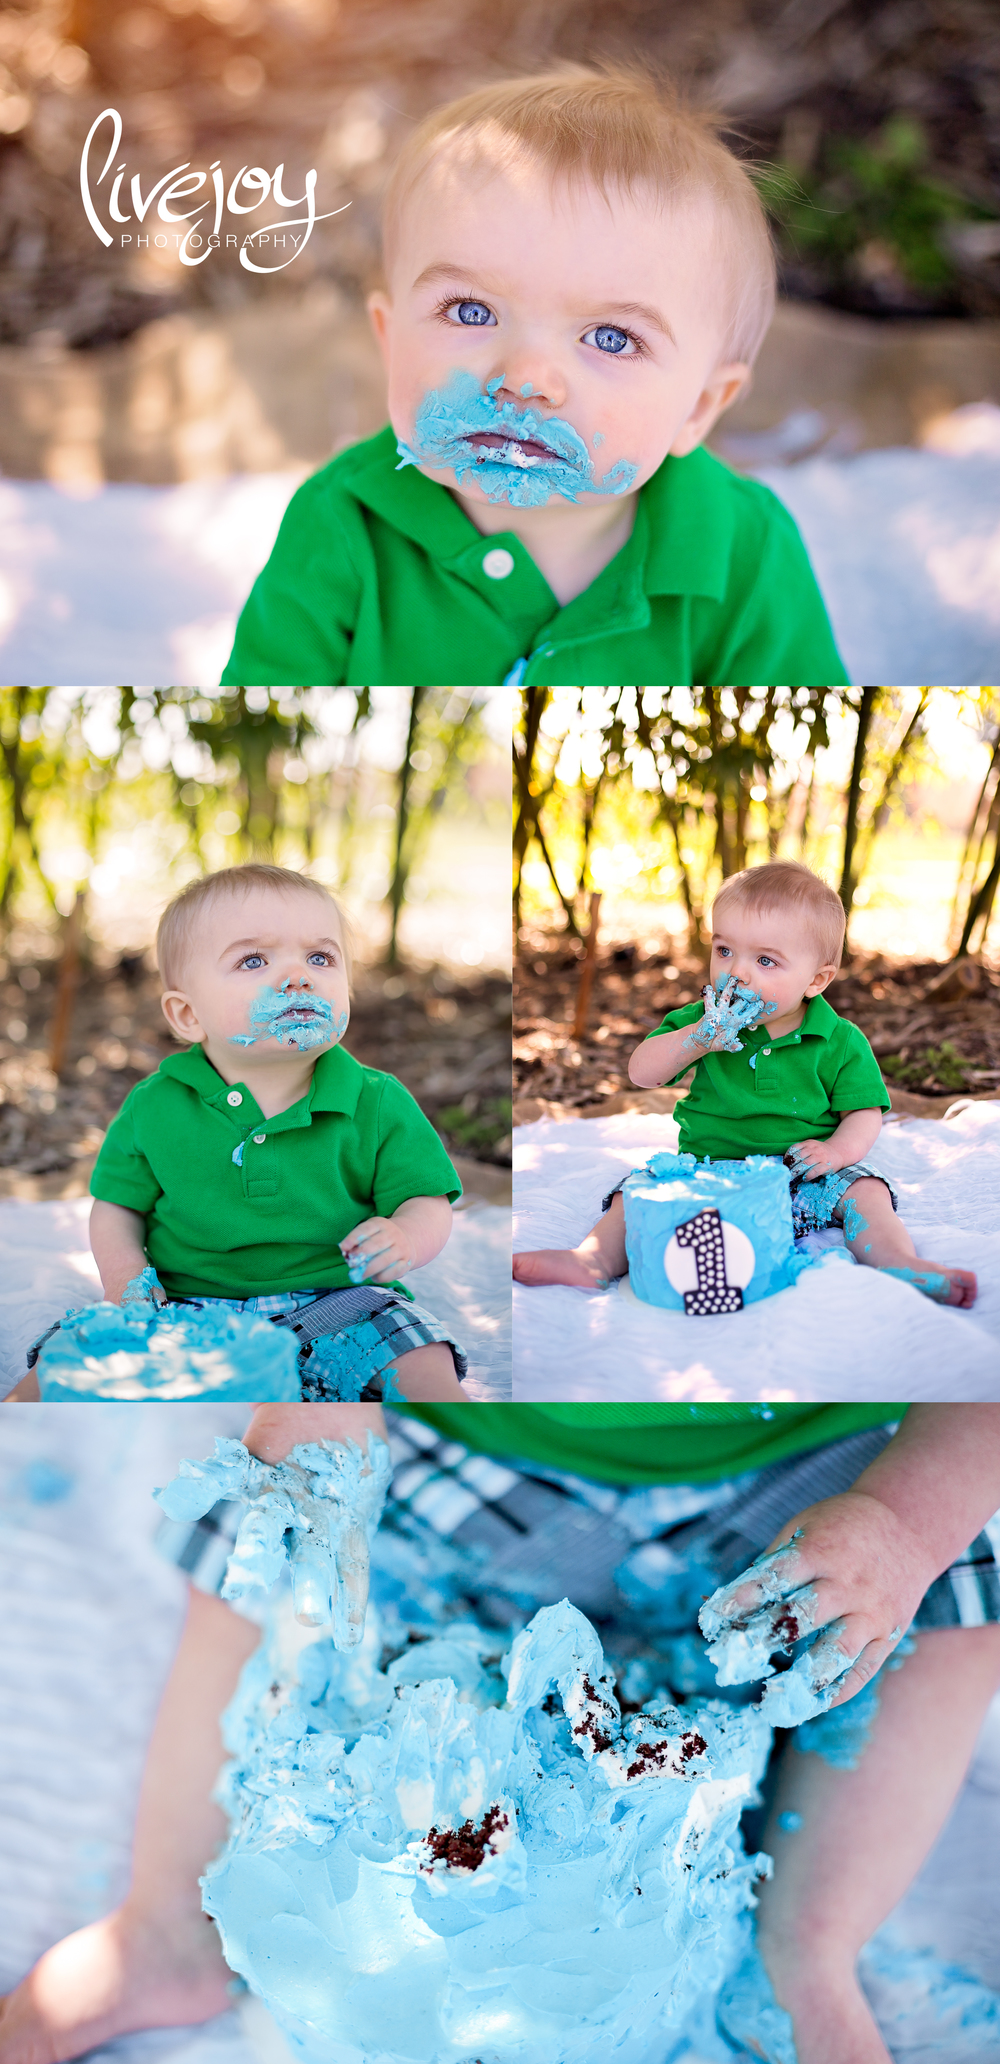 Cake Smash 1 Year Baby Boy Photography | LiveJoy Photography | Oregon